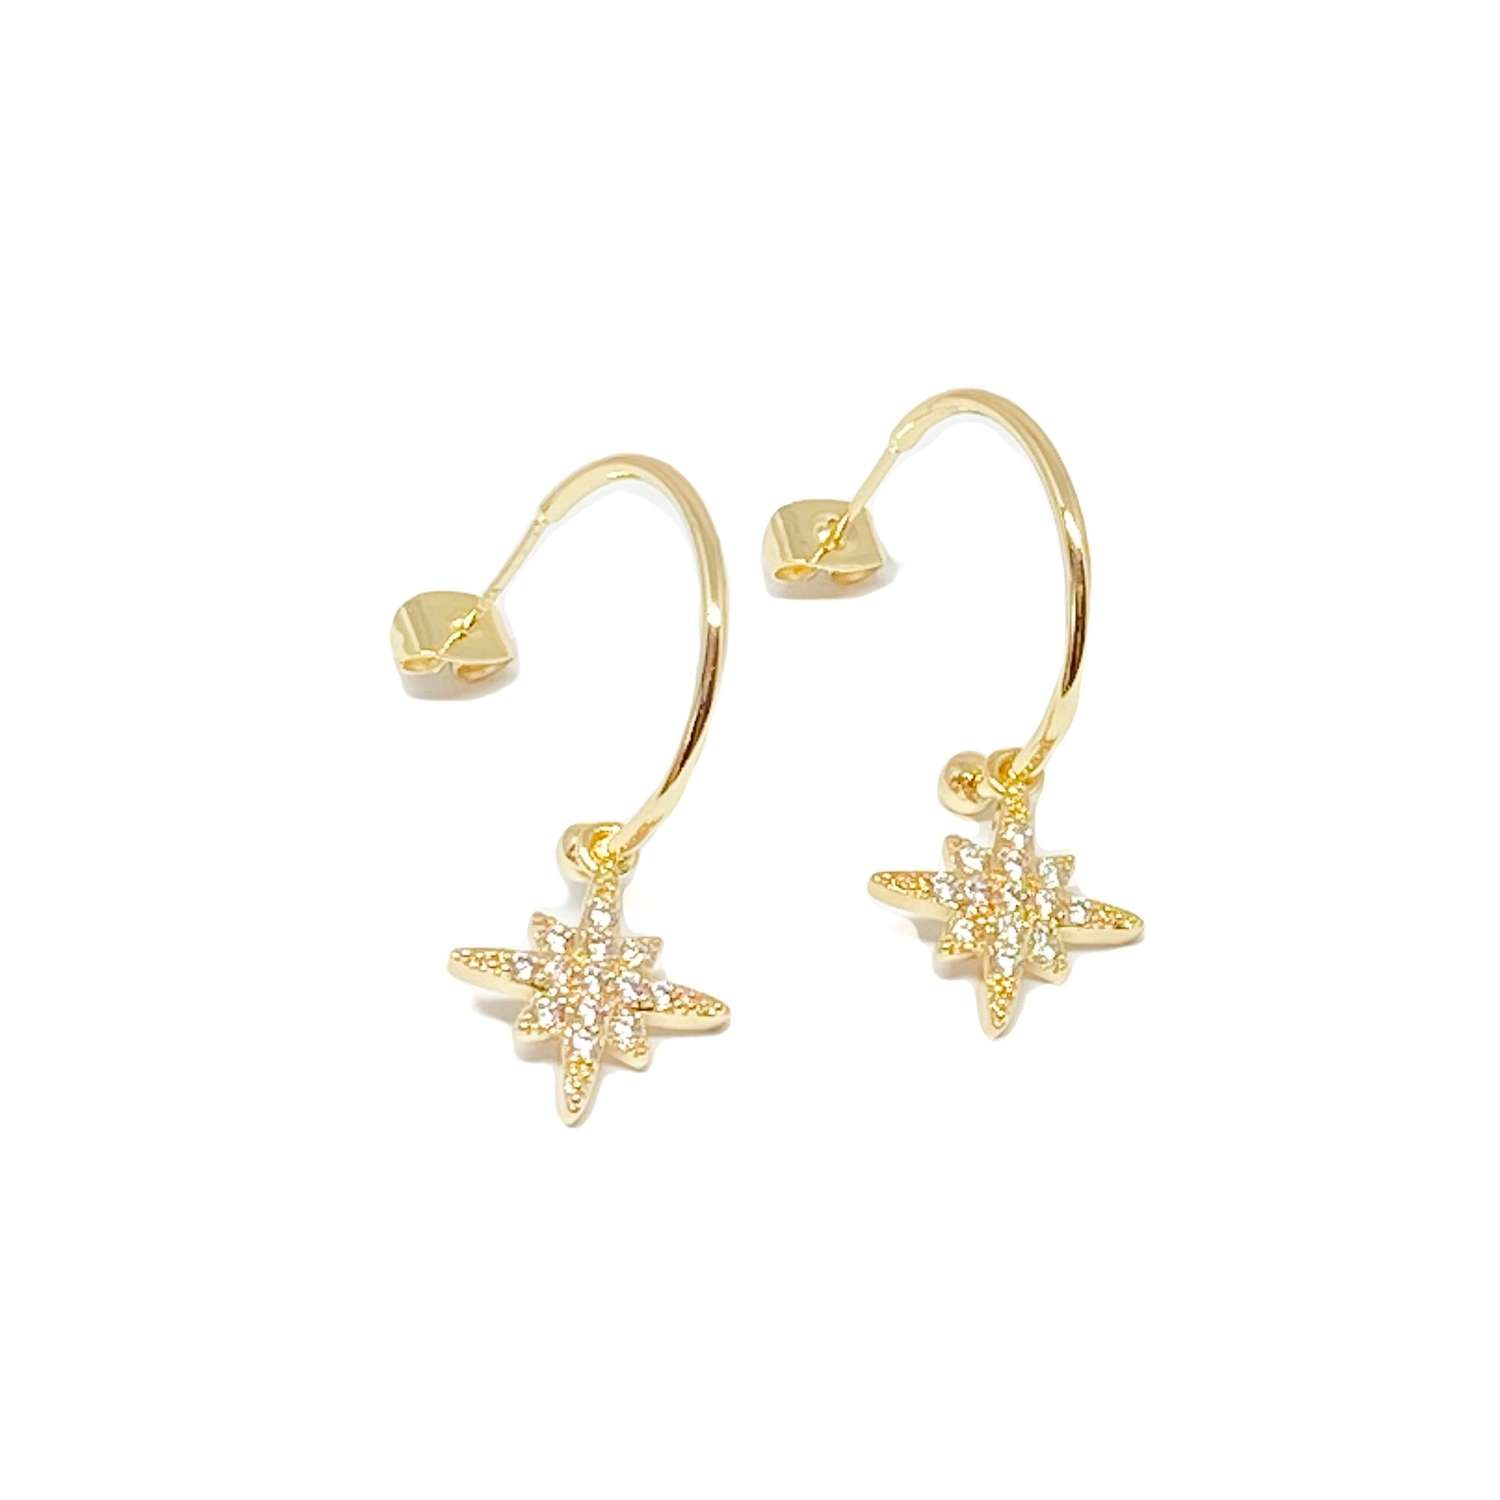 Krista Sterling Silver Hoop Earrings - Gold